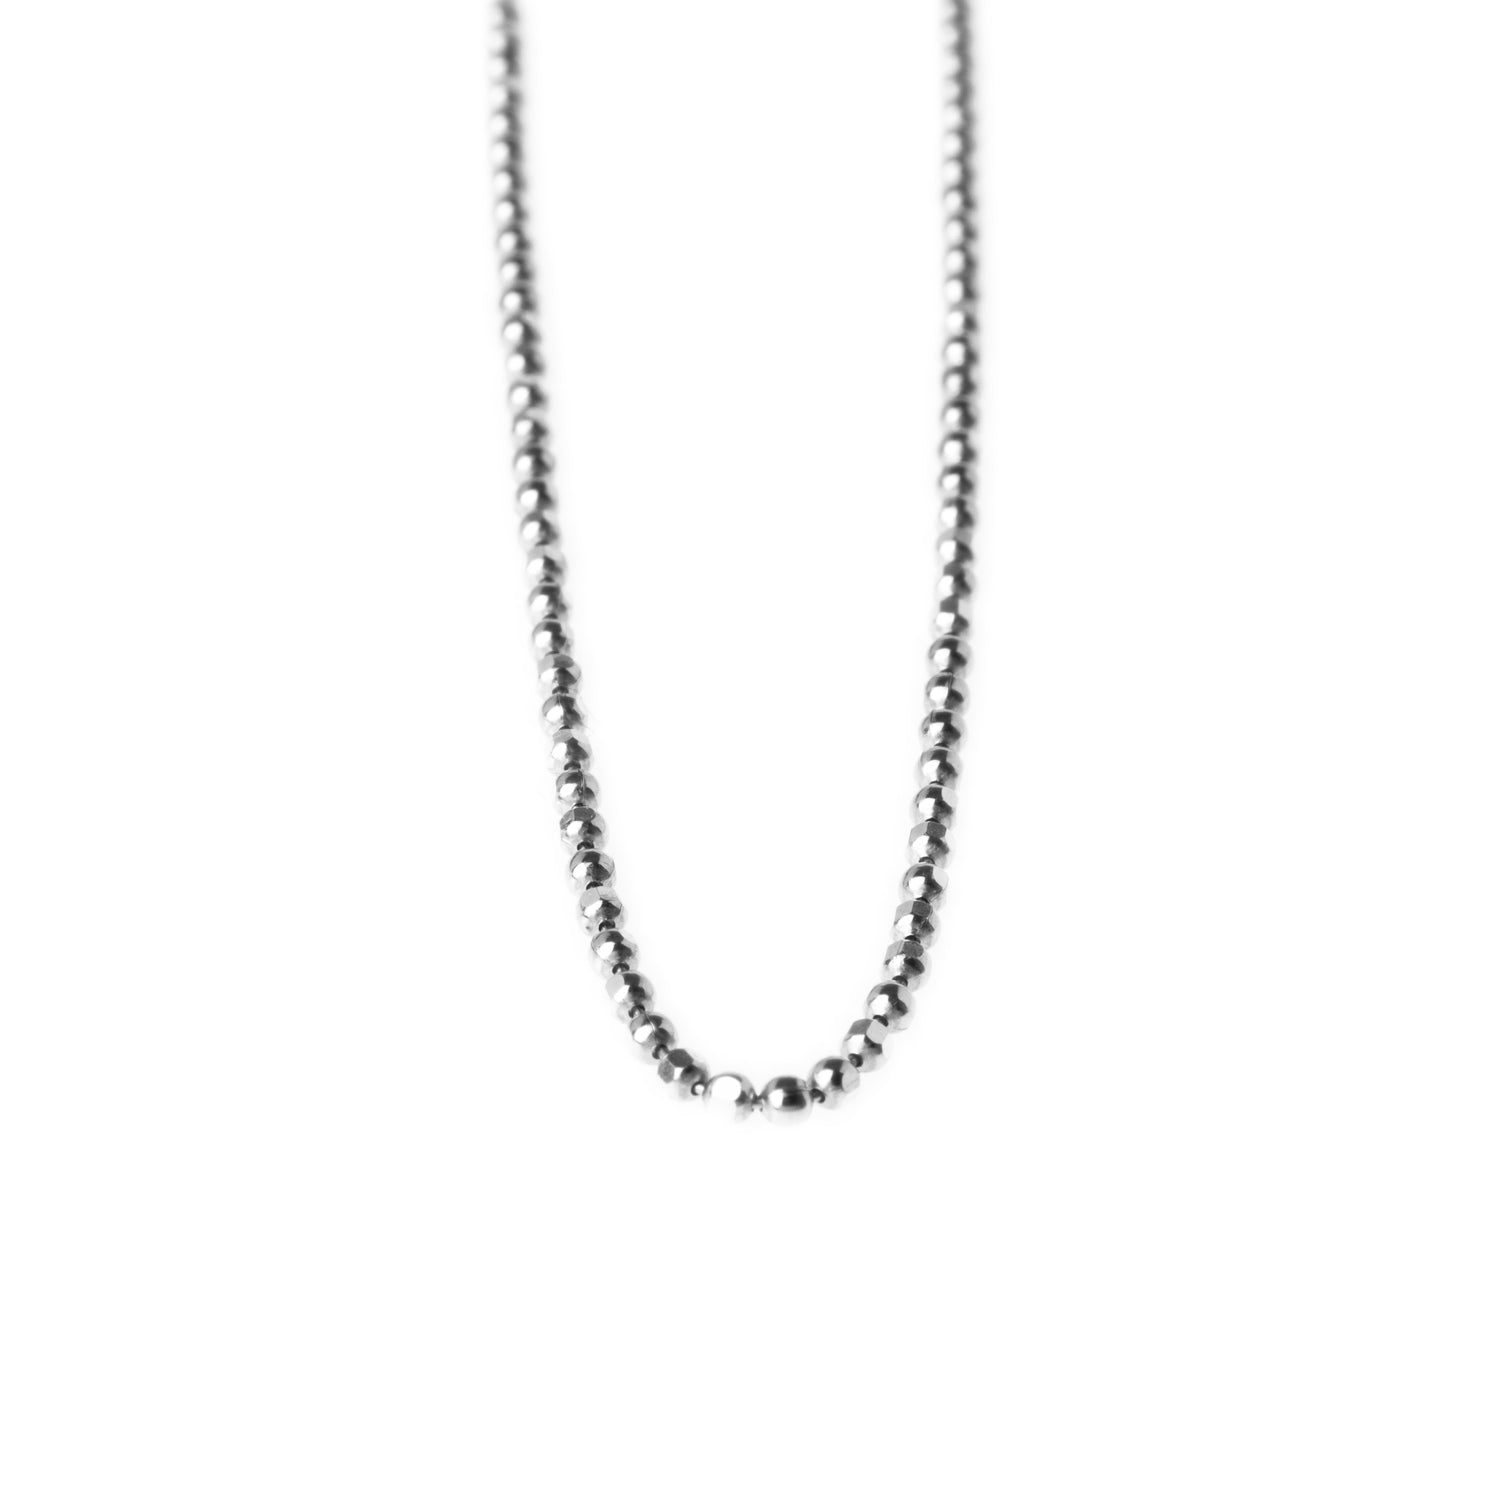 Sterling Silver Beaded Chain with Ring Clasp C-7943